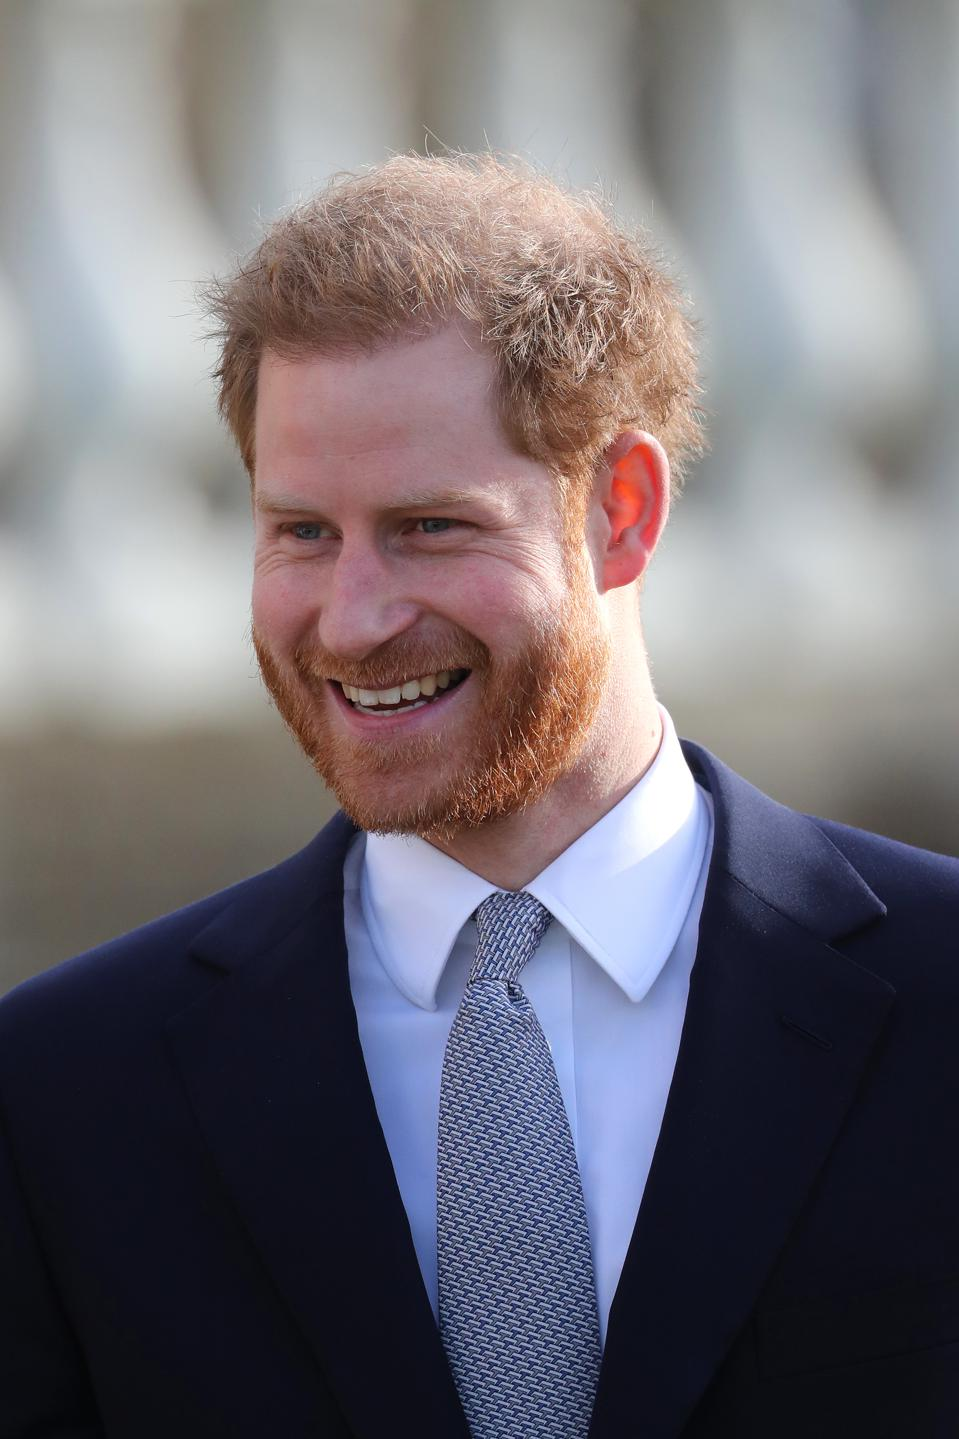 The 'Megxit' Chronicles: Frogmore House Mothballed, Harry Mops Up An Official Engagement, Meghan Markle Appears On Instagram In Canada